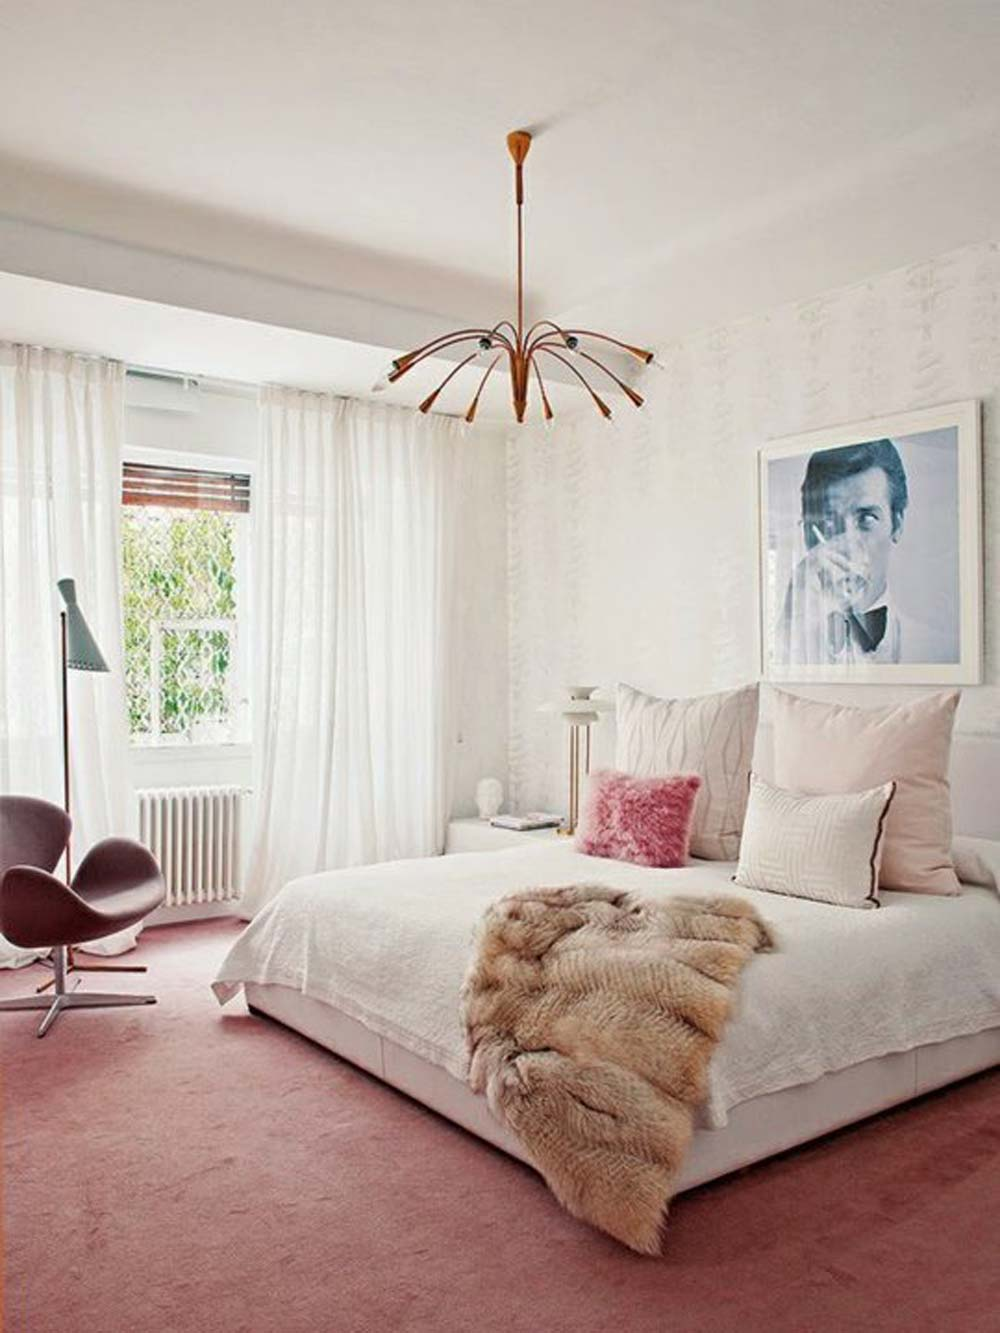 10 Perfect Pink Bedrooms – Design*Sponge